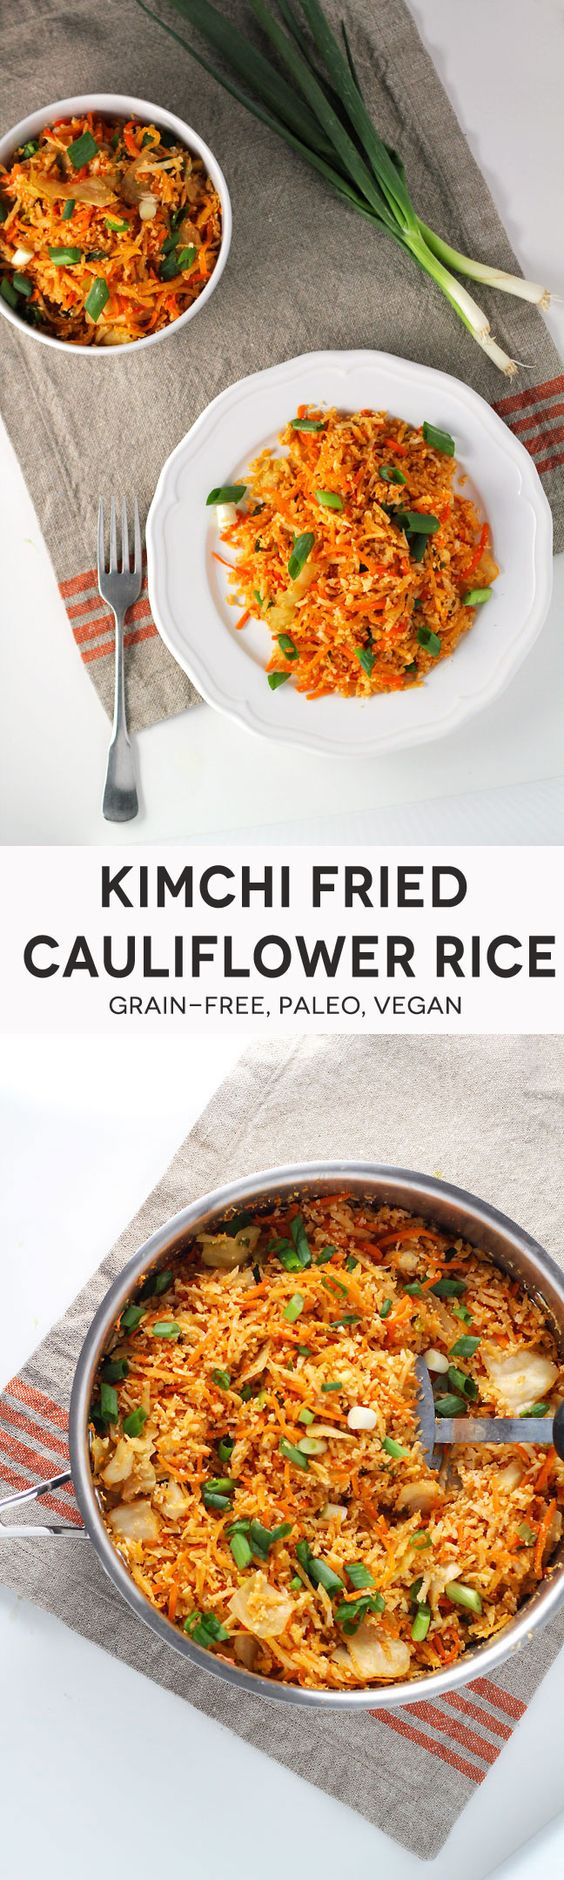 Kimchi Fried Cauliflower Rice | Recipe | Cauliflower Rice ...